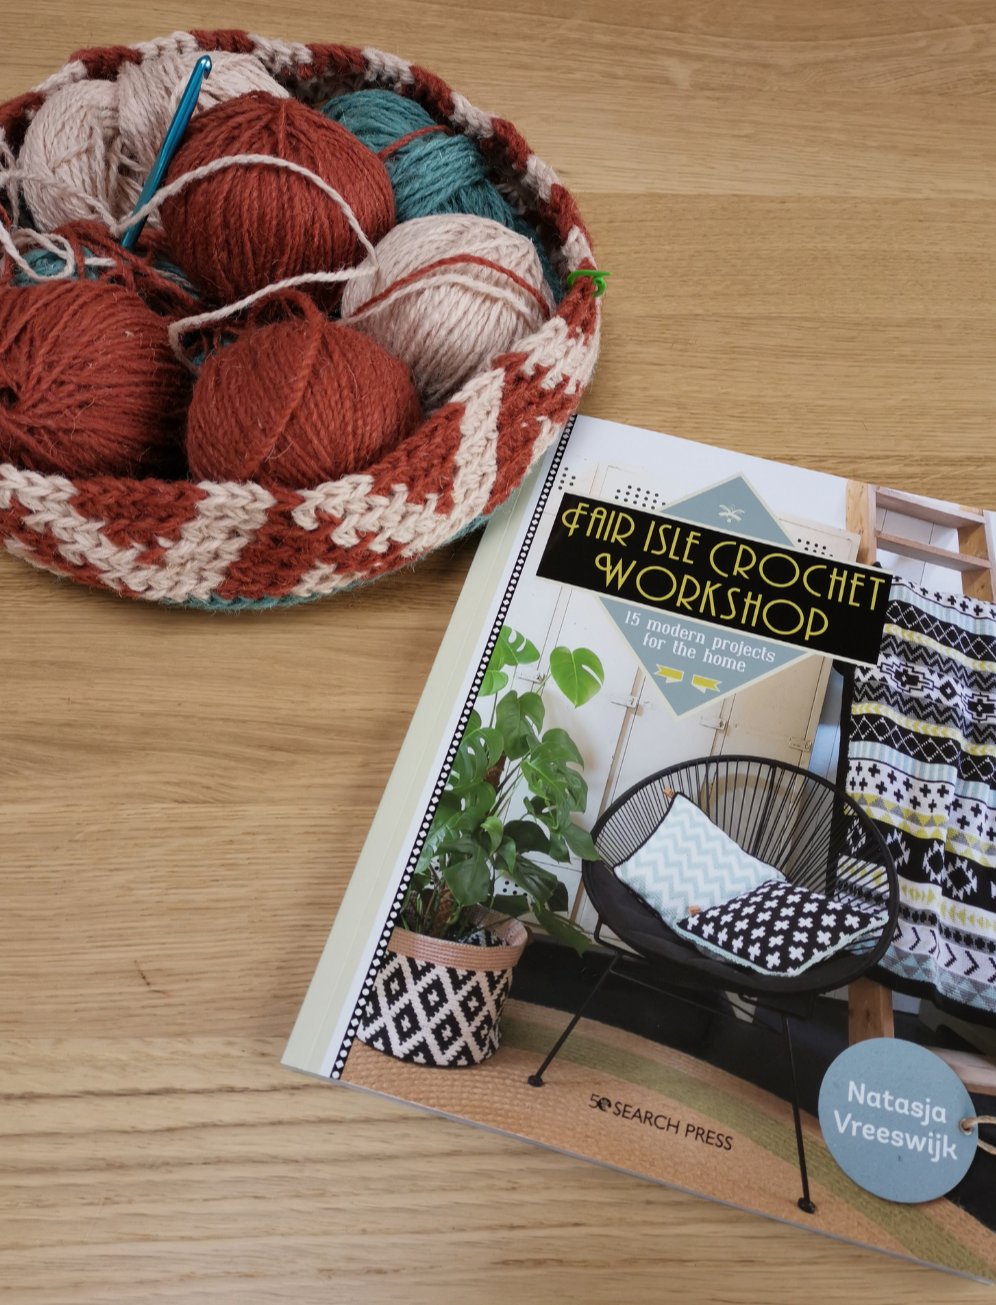 'Fair Isle Crochet Workshop' book on my dining table with the beginnings of my plant holder from the book.  My version is in a deep copper and warm cream coloured itchy as wool.